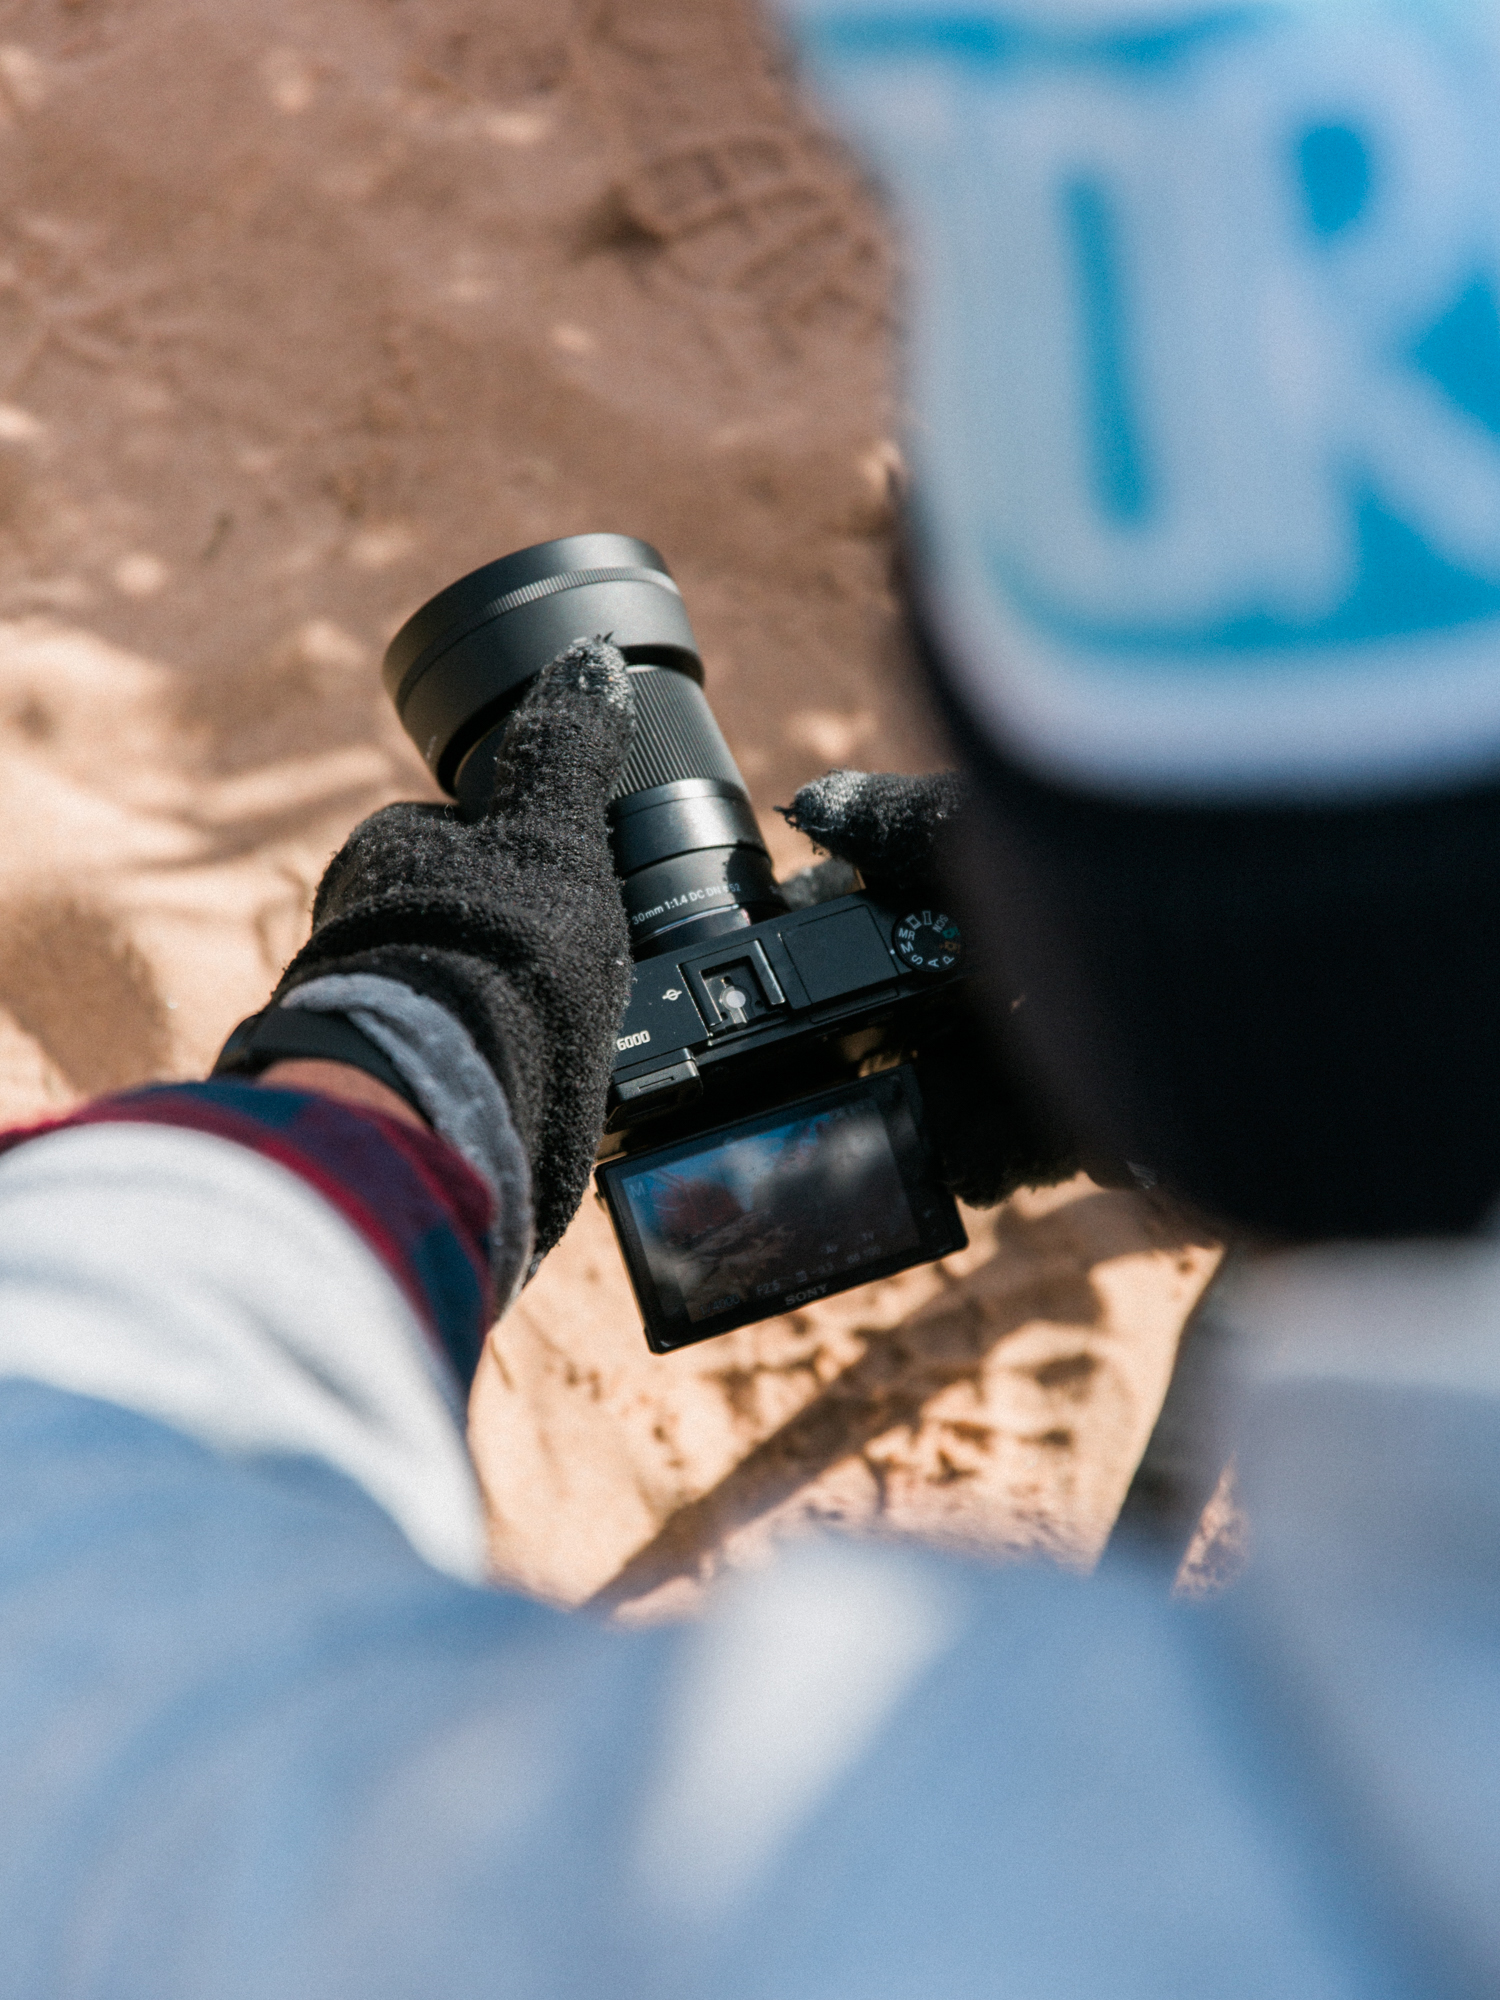 Watching Amir's approach to his photos throughout the weekend was so interesting! Landscape photography I find to be an art of it's own, and I learned so much from him over the weekend just by watching him work through his shots.